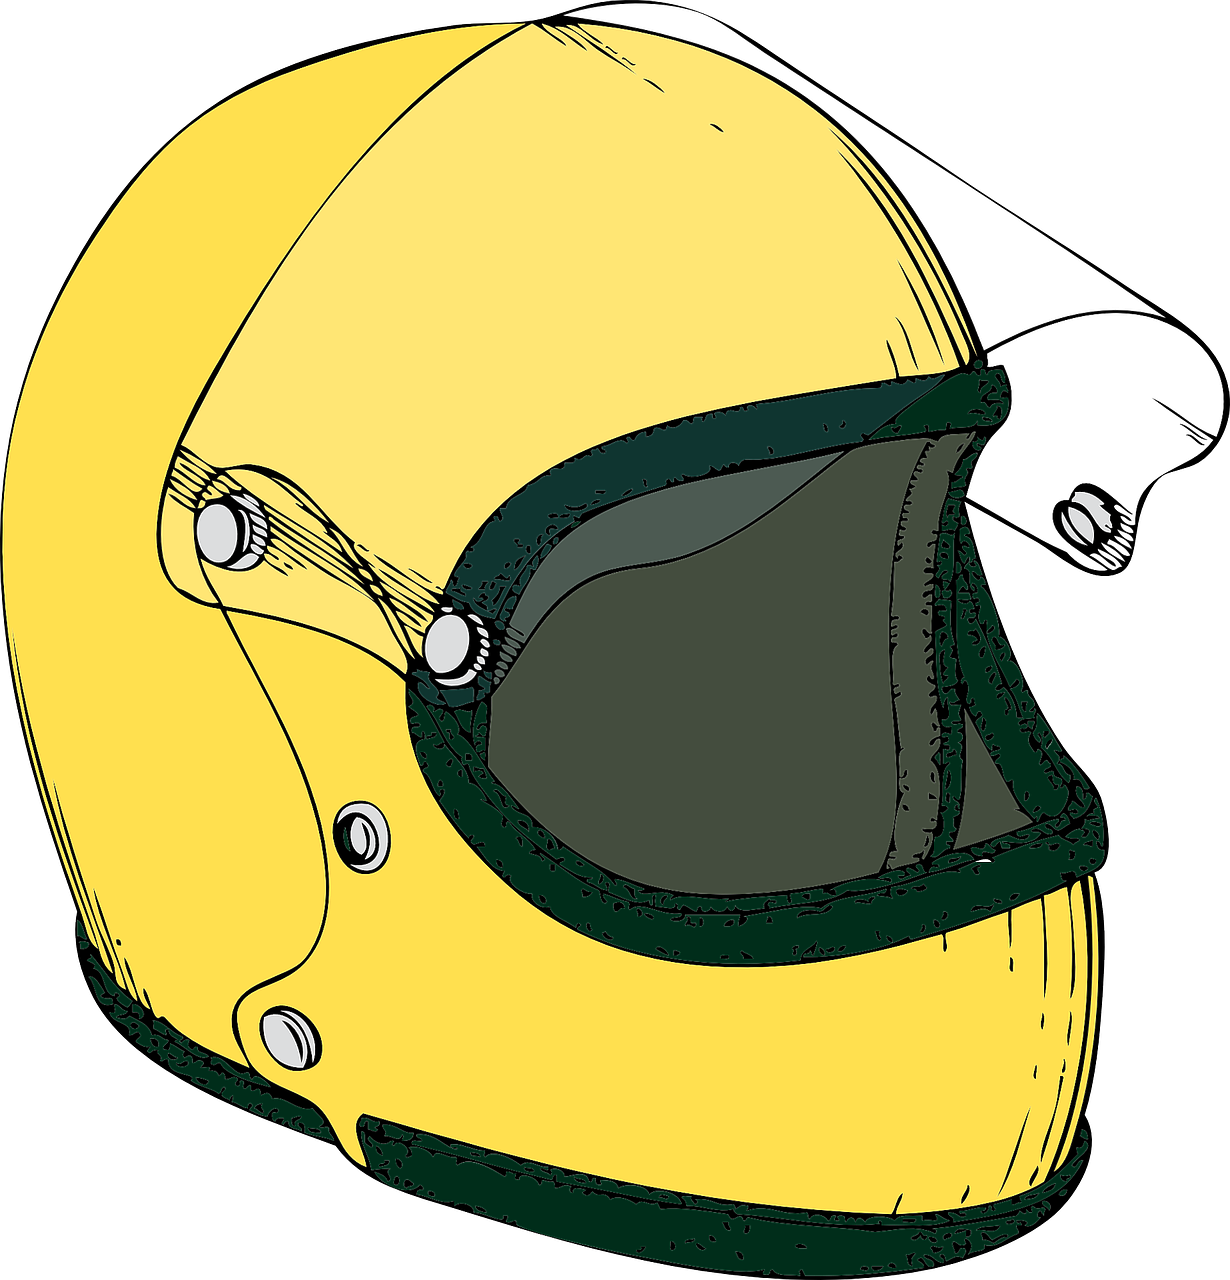 helmet,motorcycle,yellow,bike,crash,rider,quality,protective,headgear,survival,safety,defense,cover,shield,guard,secure,head injury,wreck,saving lives,full face,plastic,carbon fiber,free vector graphics,free pictures, free photos, free images, royalty free, free illustrations, public domain